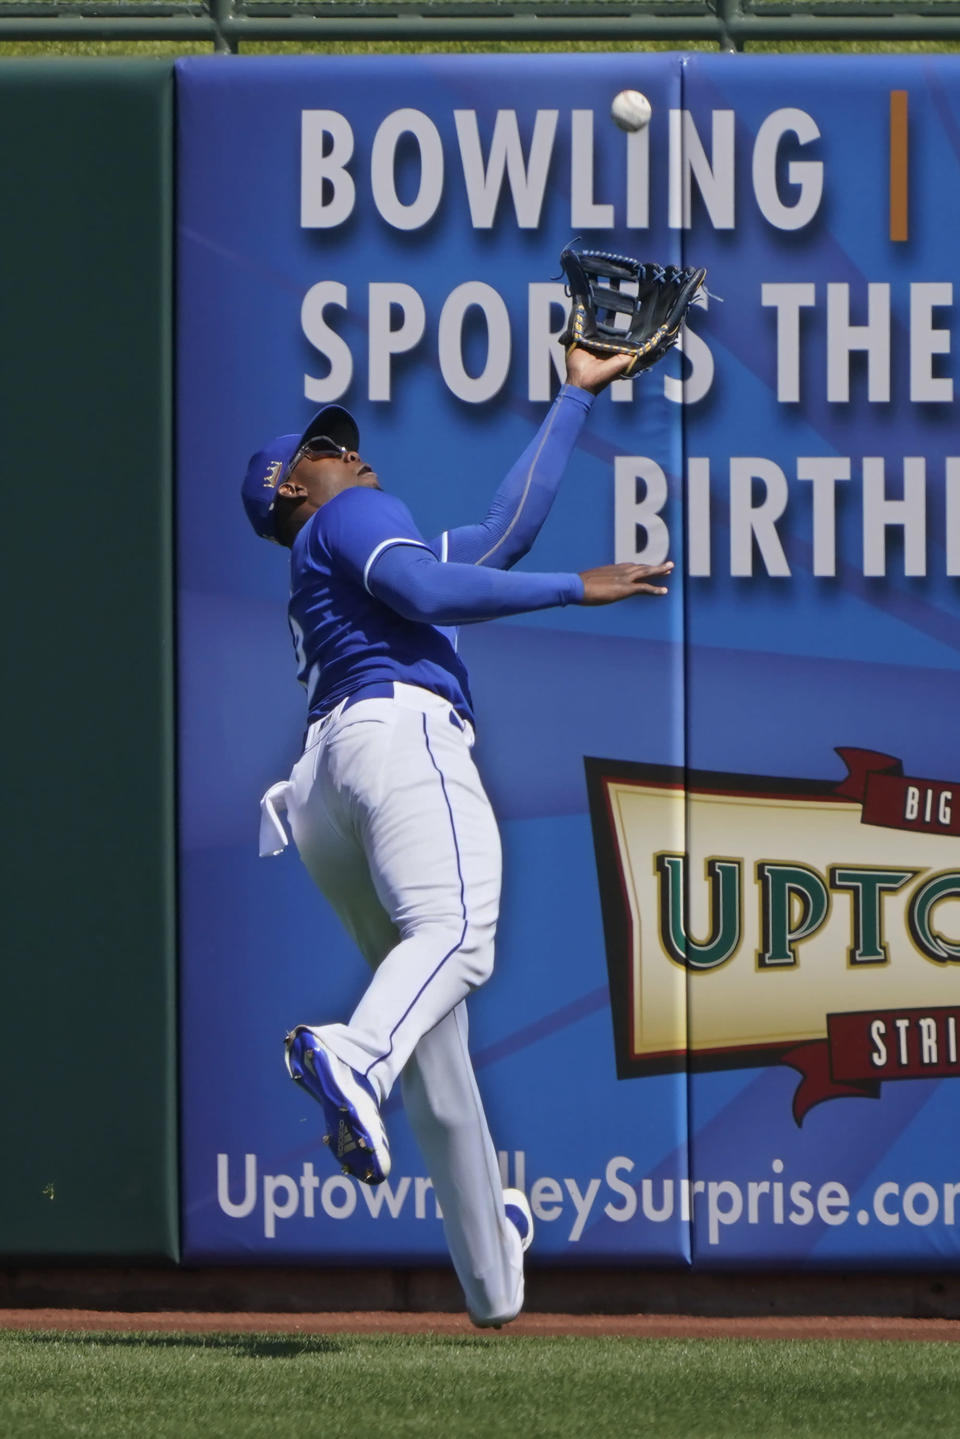 Kansas City Royals right fielder Jorge Soler catches a fly ball hit by Colorado Rockies' Raimel Tapia for an out in the third inning of a spring training baseball game Sunday, March 21, 2021, in Surprise, Ariz. (AP Photo/Sue Ogrocki)